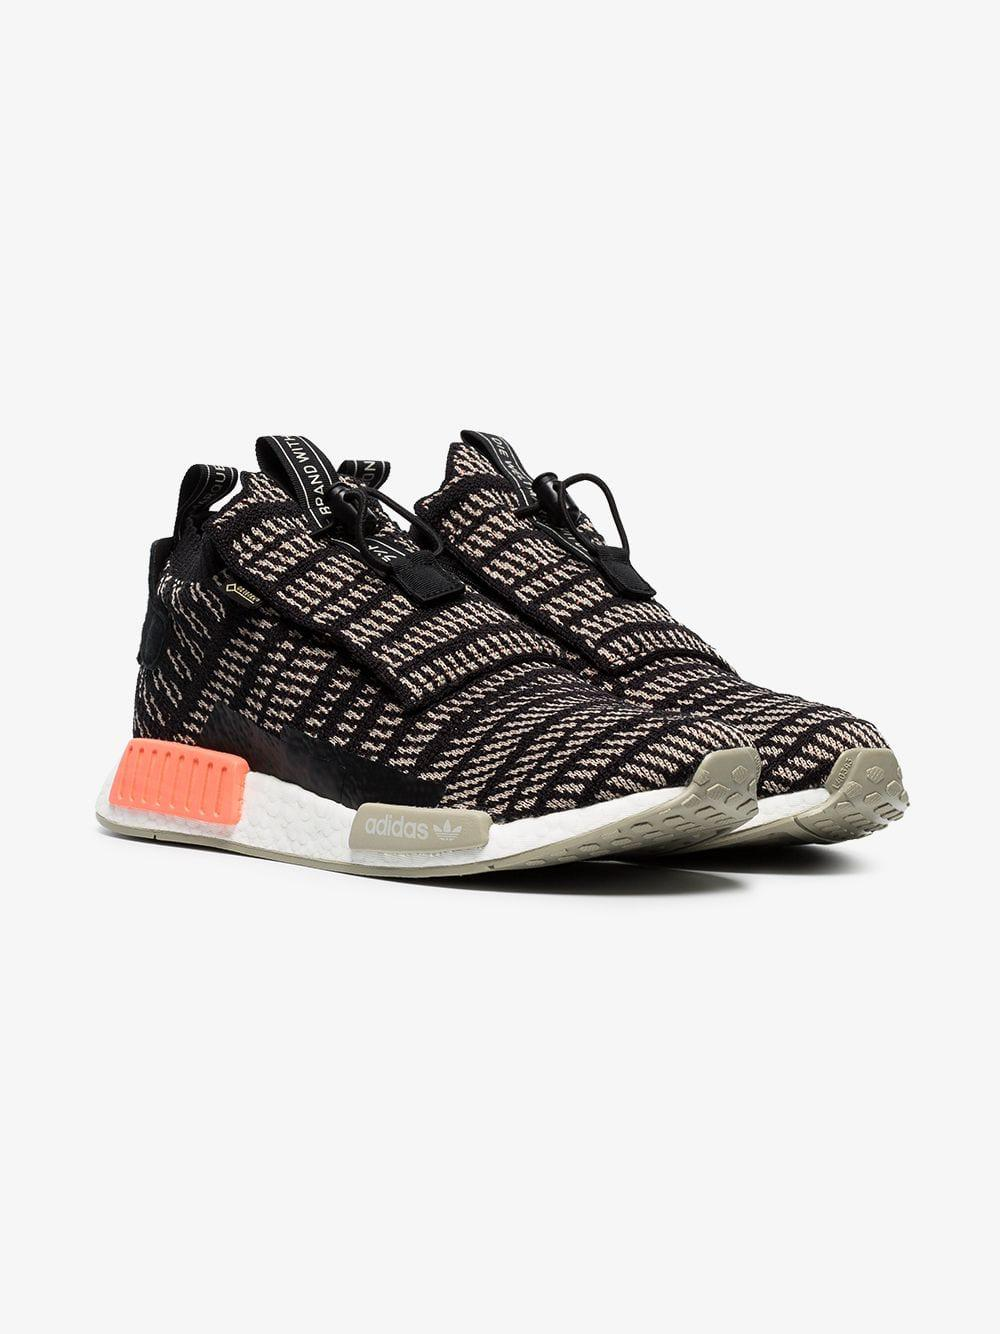 6d59b02c219a47 Lyst - adidas Black And Beige Nmd Ts1 Primeknit Gtx Sneakers in ...